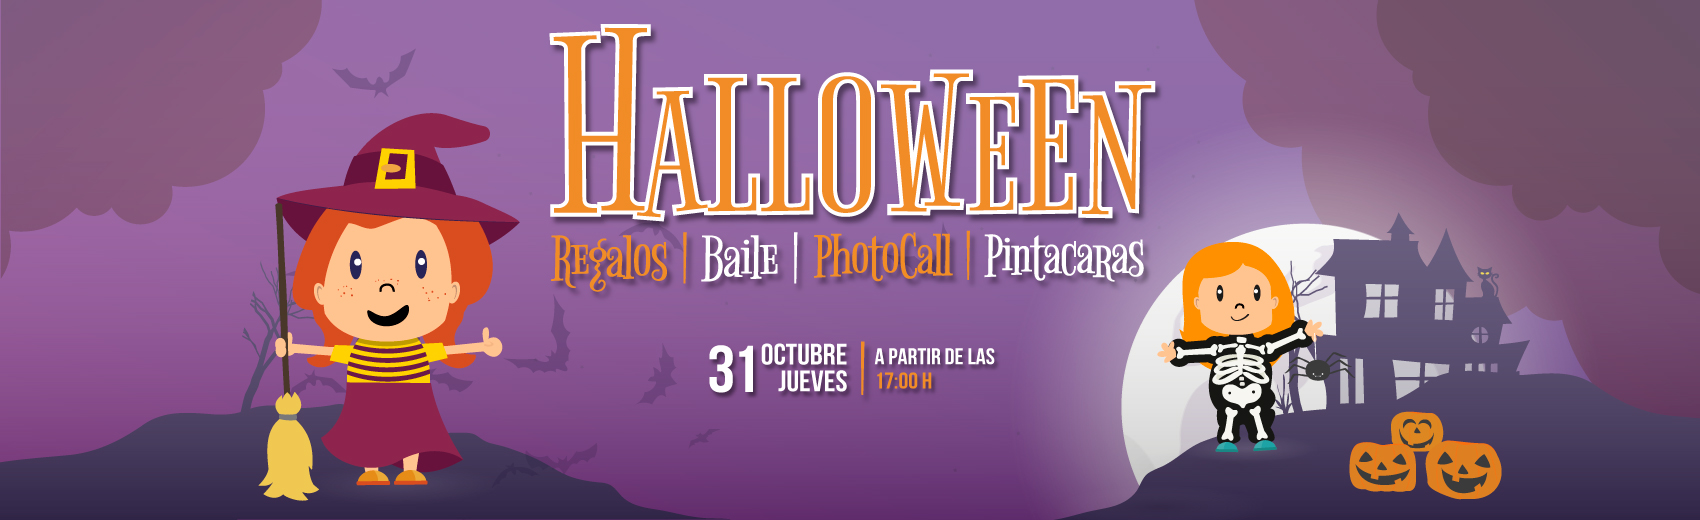 header-web-hallowen-19.jpg